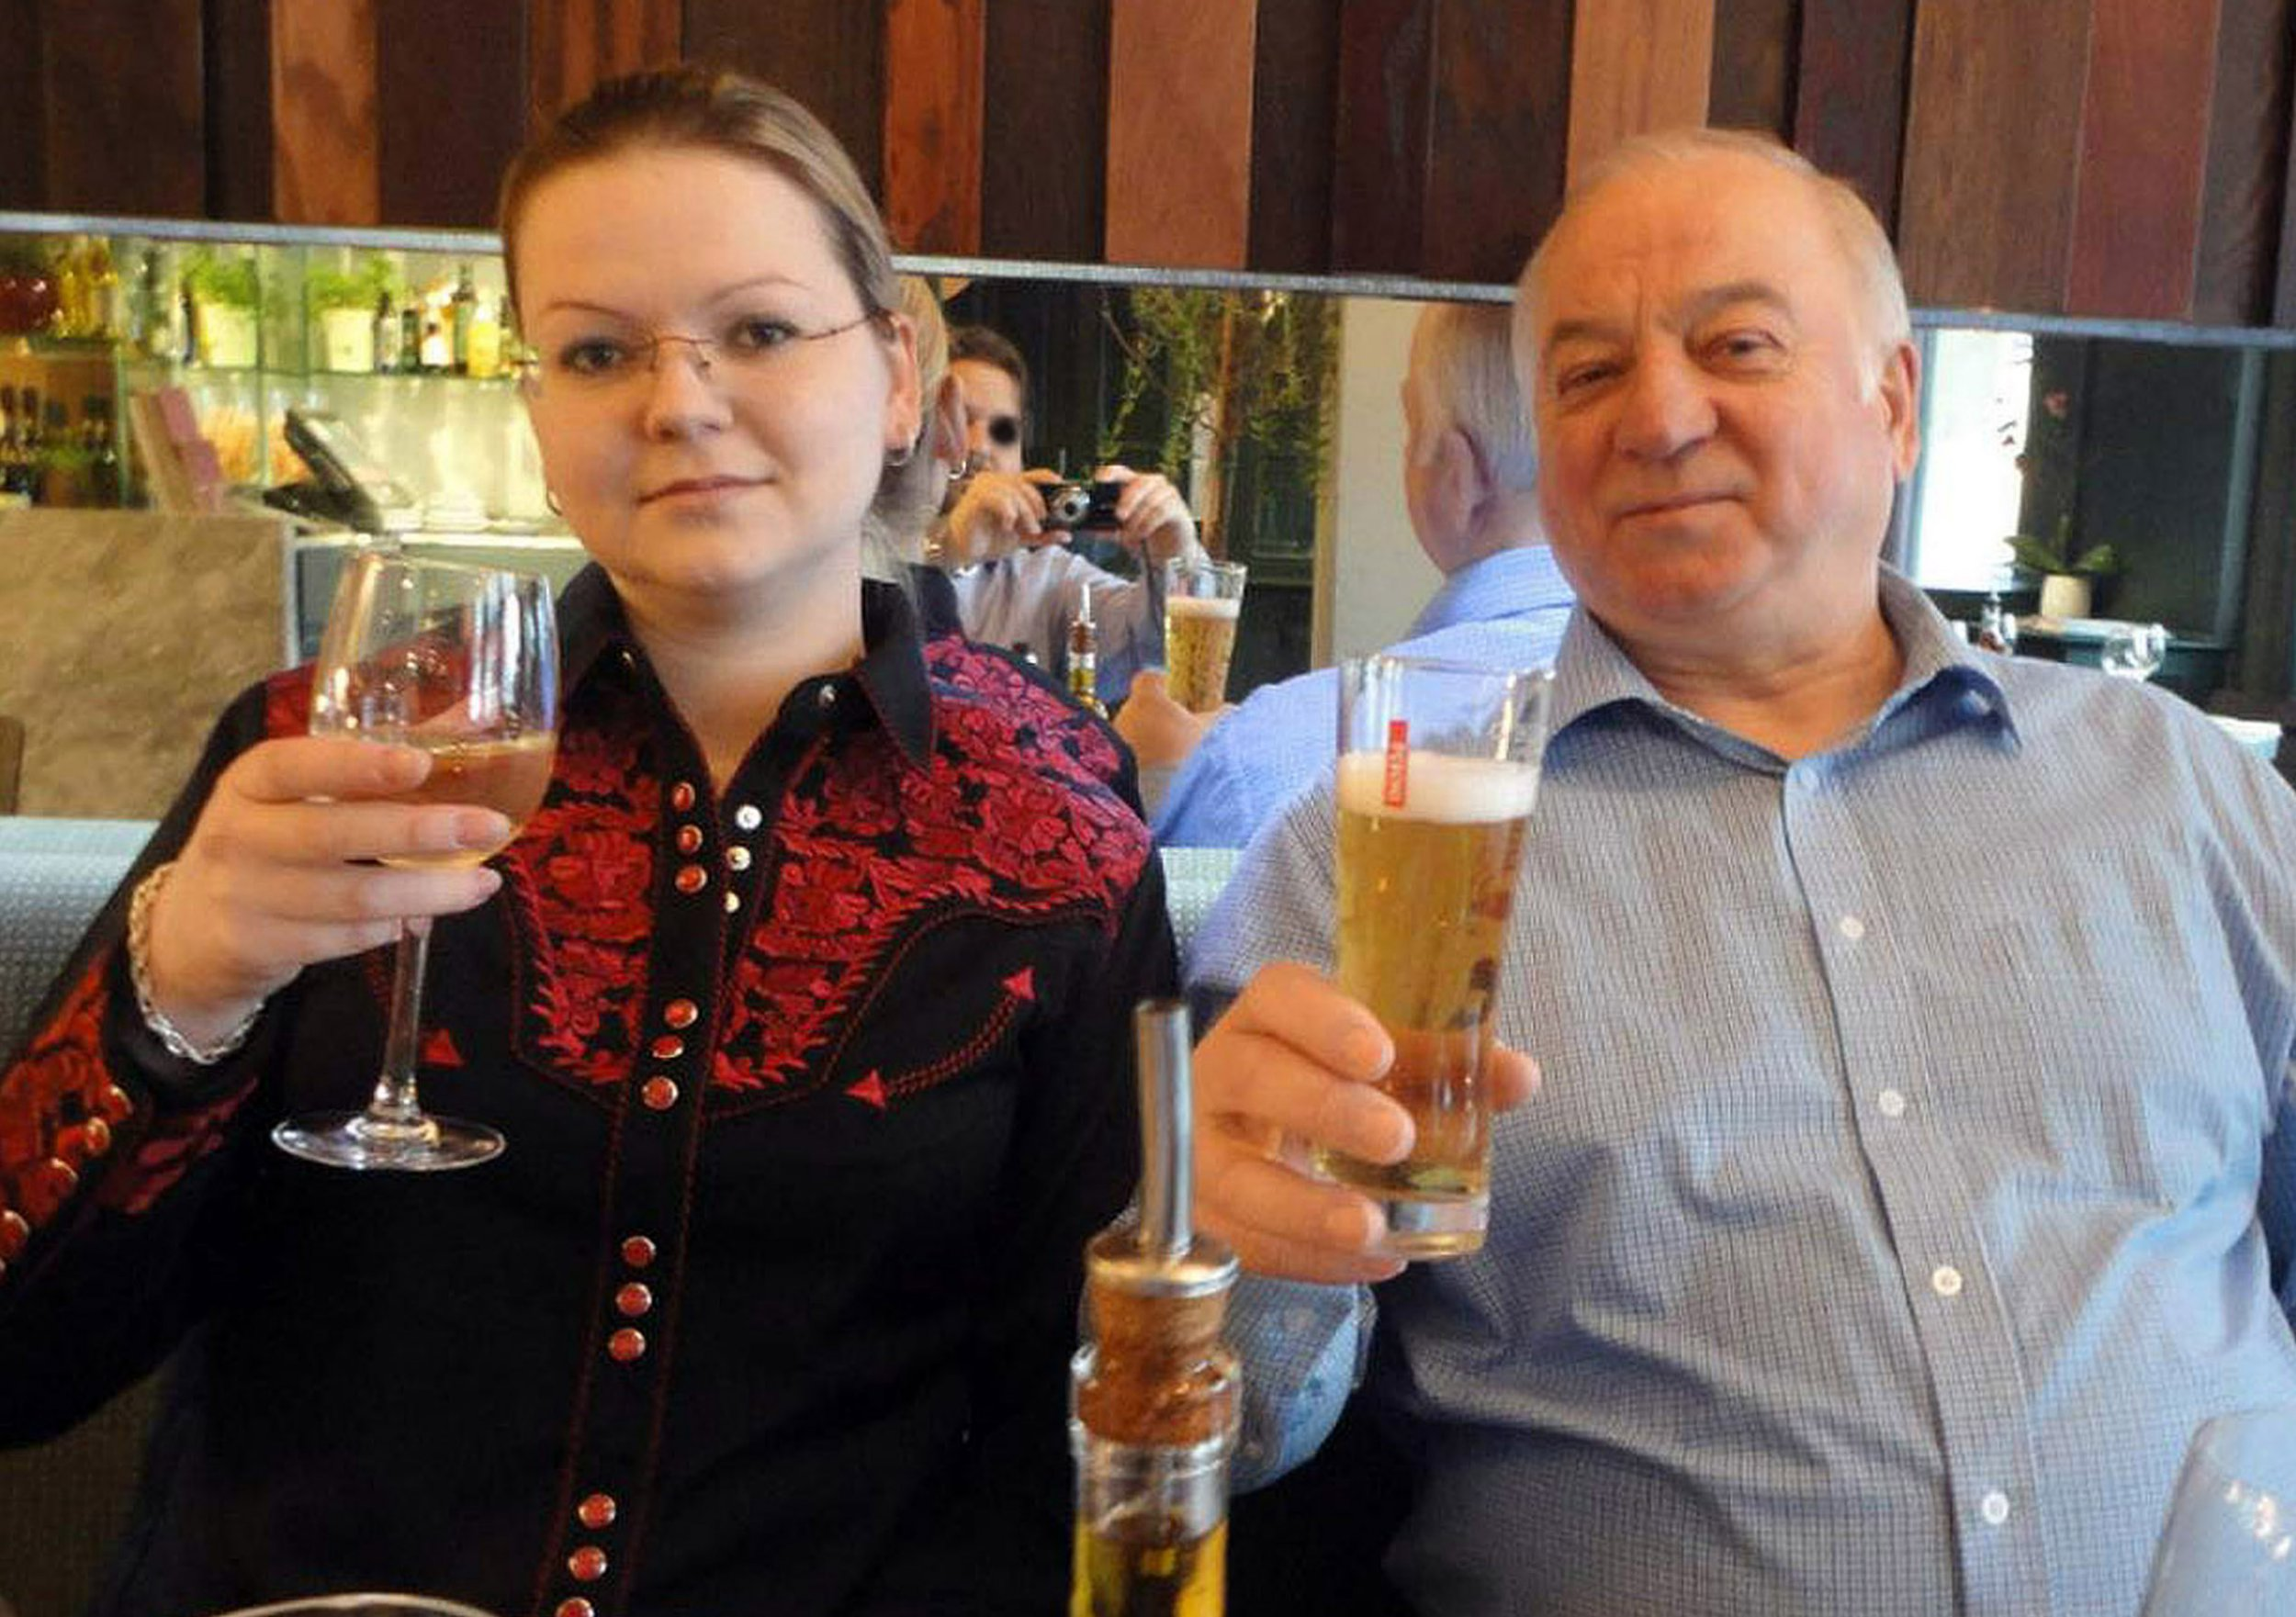 Pic shows: Sergei and Yulia Skripal photographed having a meal apparently in the UK - possibly Zizzi restaurant Pic supplied: Pixel8000 Ltd